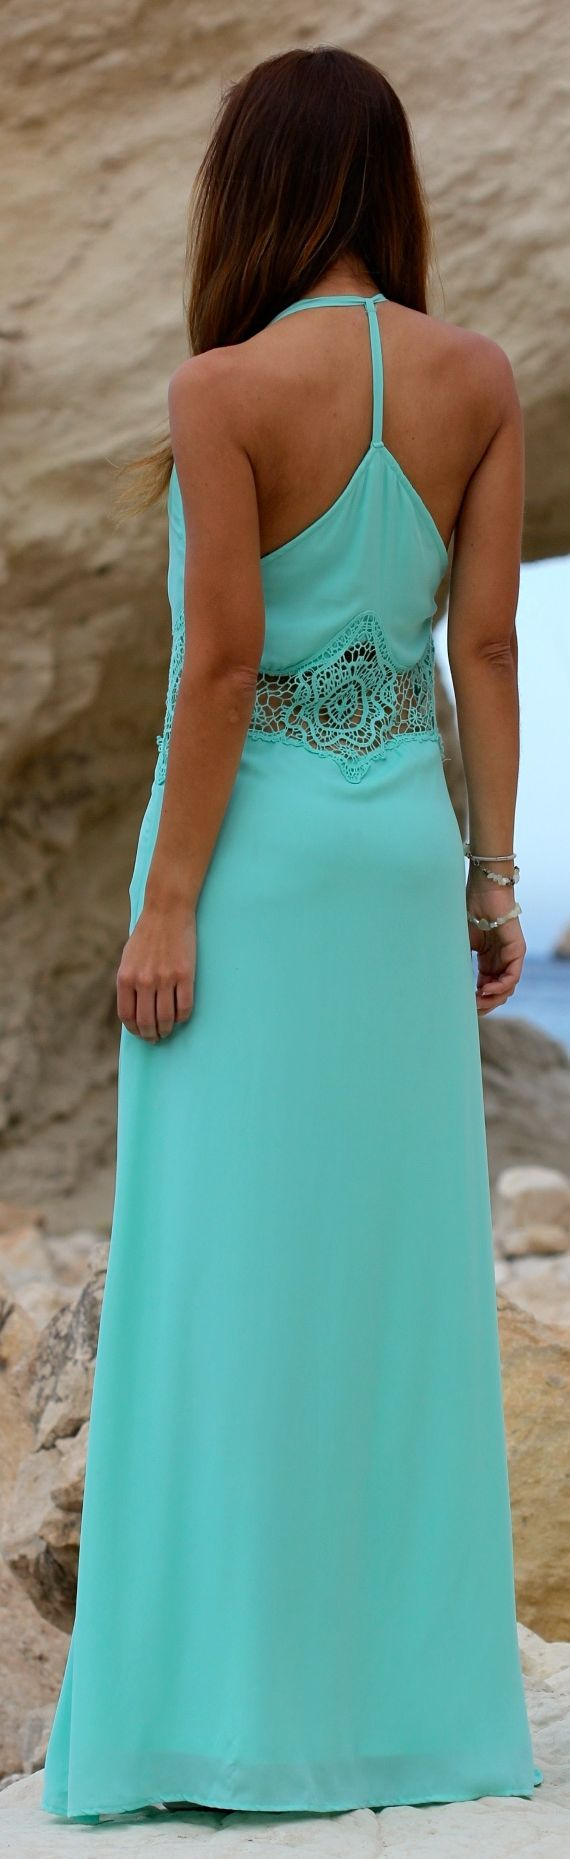 Kuka & Chic Shop Mint Lace Trim Maxi Dress